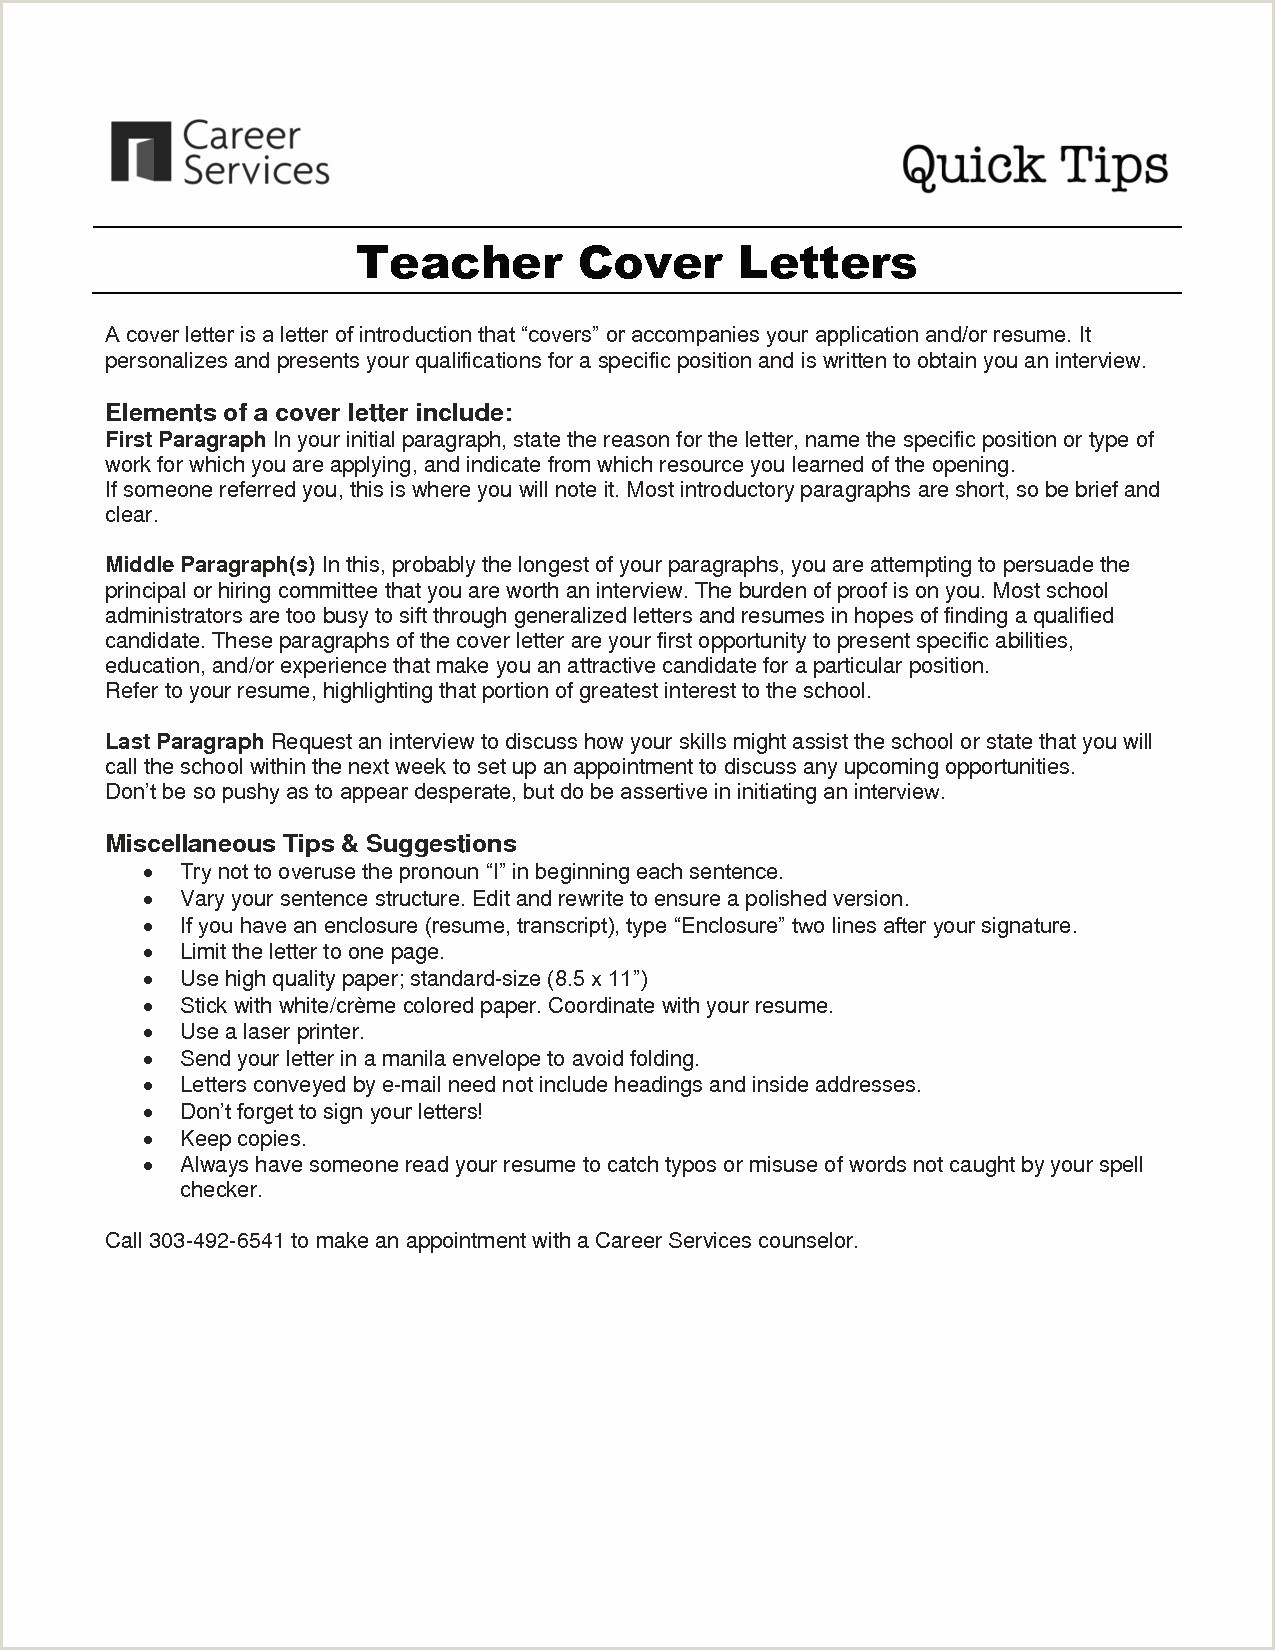 Cover Letter for Pharmacy Technician Job Beautiful Pharmacy Letter — Kenbachor Kenbachor